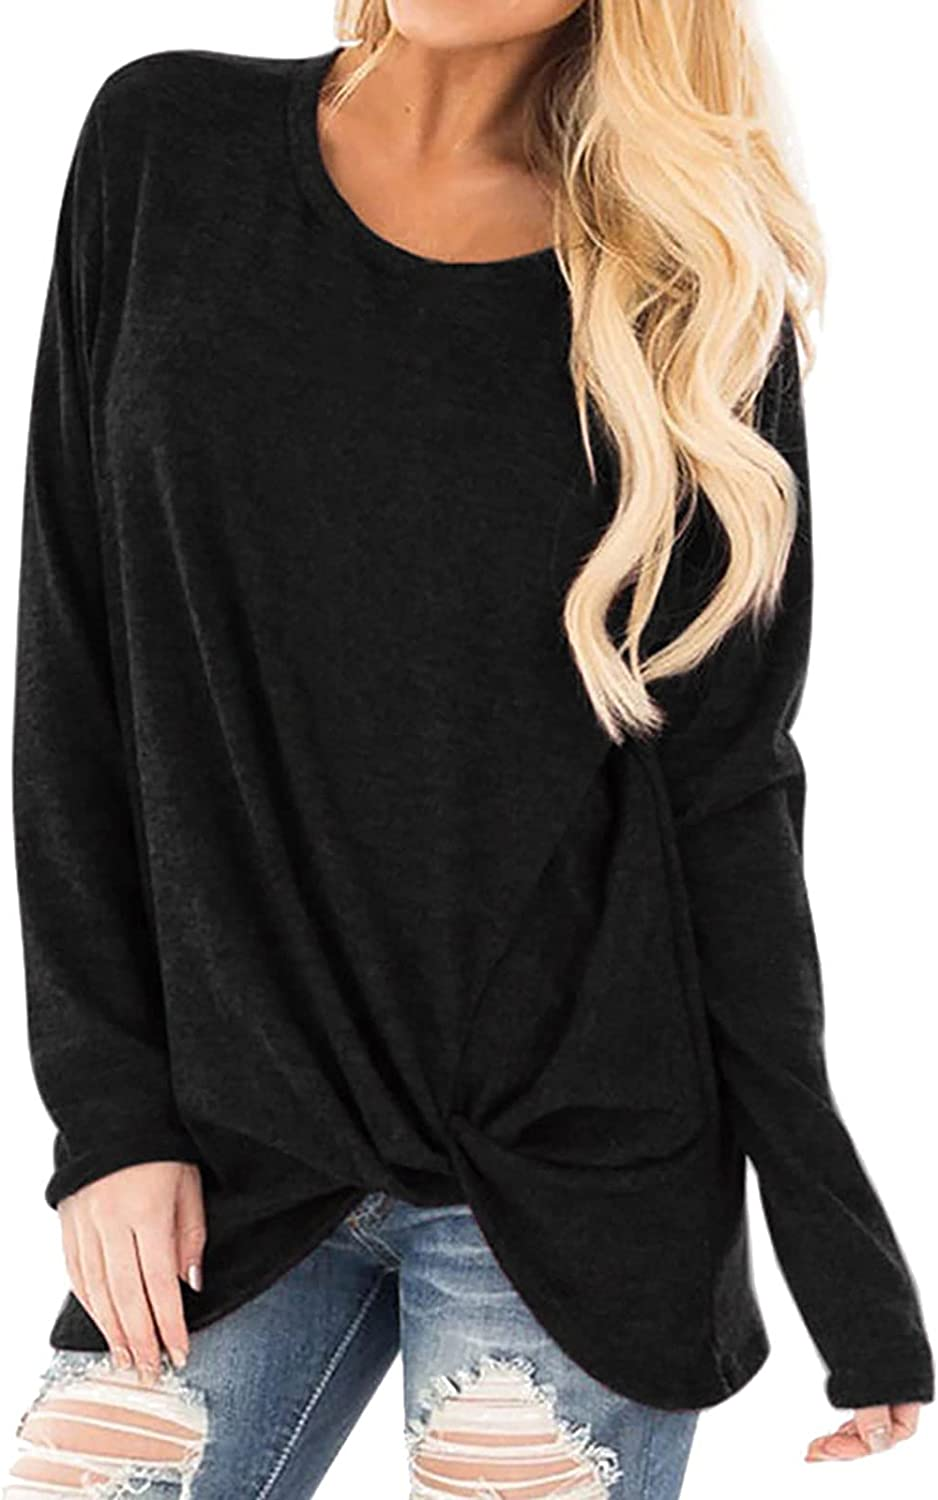 Women Fashion Classic Loose Long Sleeve O-Neck Casual Solid T-Shirt Blouse Tops